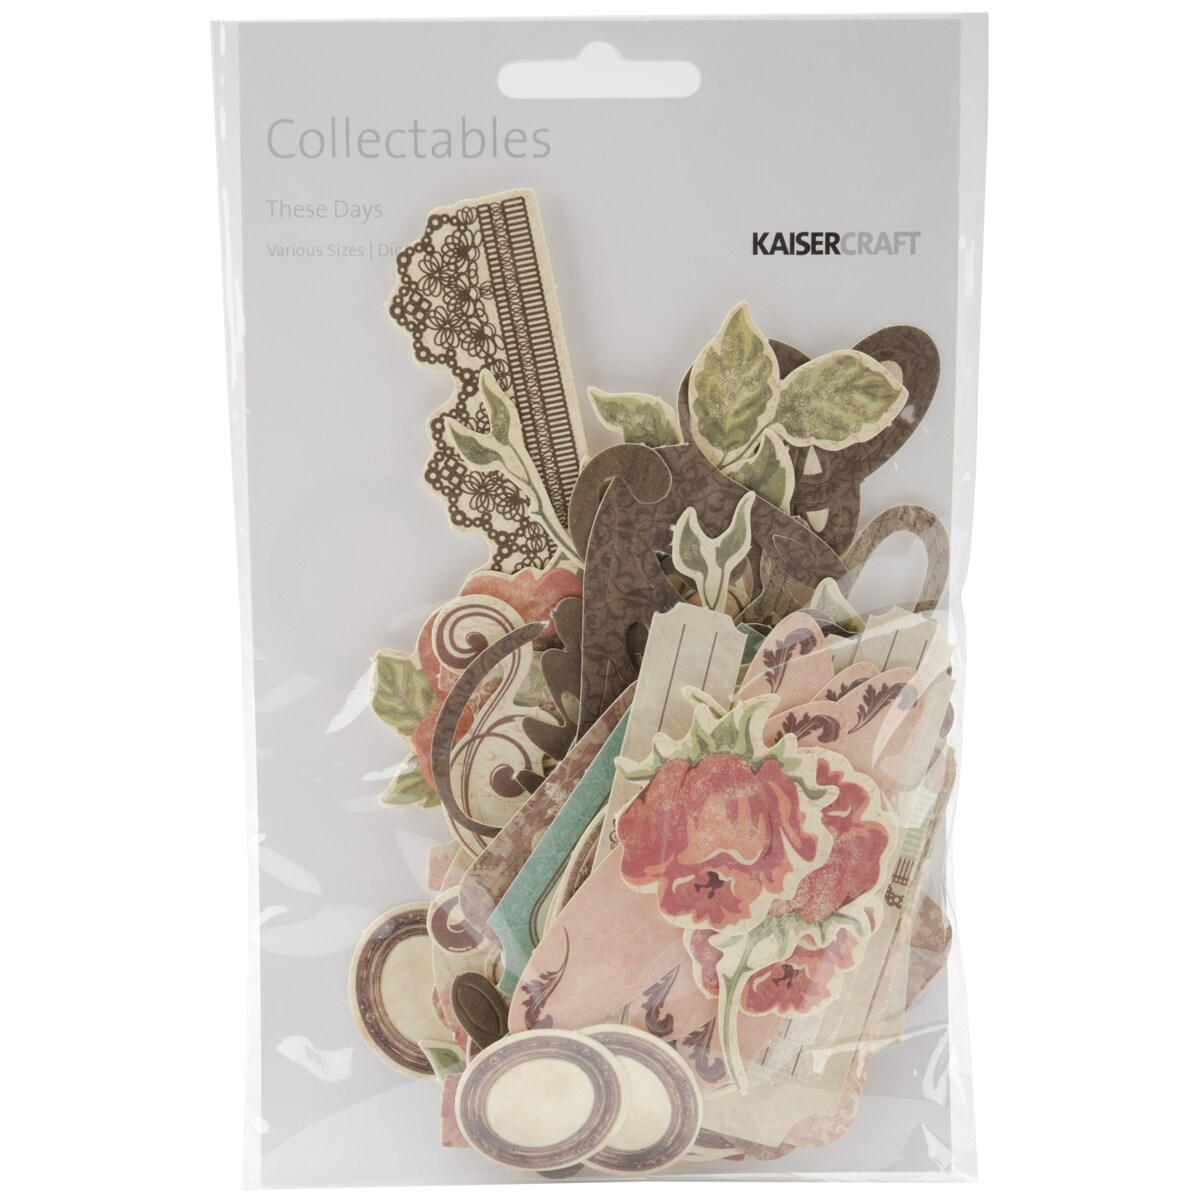 These Days Collectables Cardstock Die-Cuts 59/Pkg